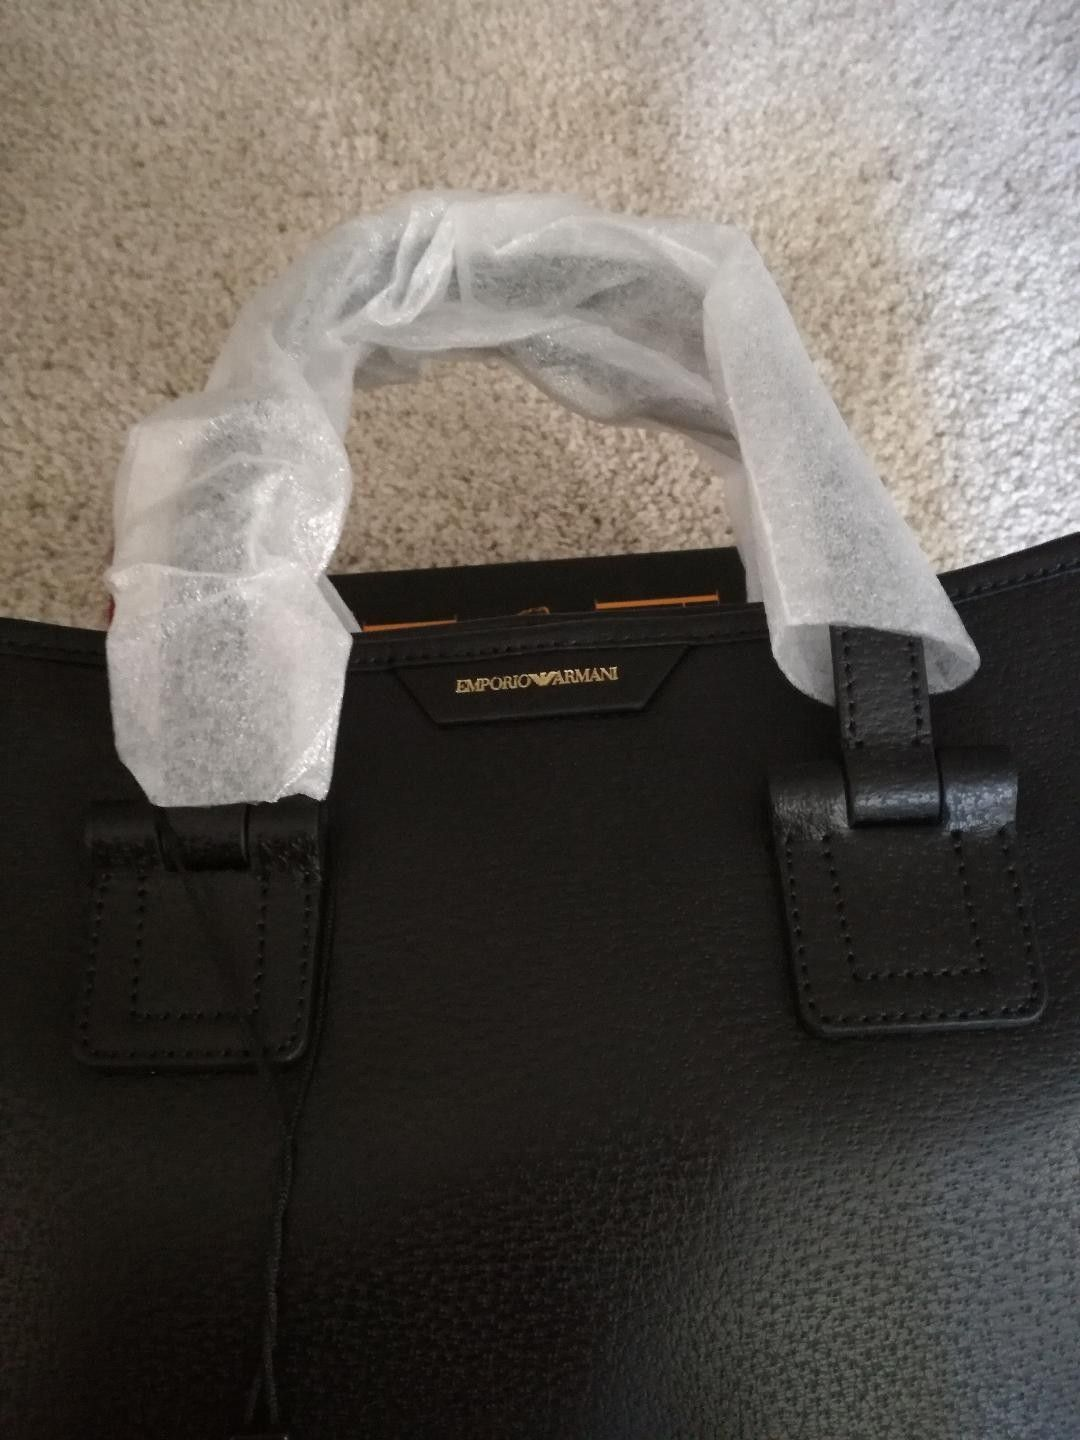 New, original, black, womens Emporio Armani bag to sell. Price 2500NOK. All info - Oslo  - New, original, black, womens Emporio Armani bag to sell. All info priv :) - Oslo